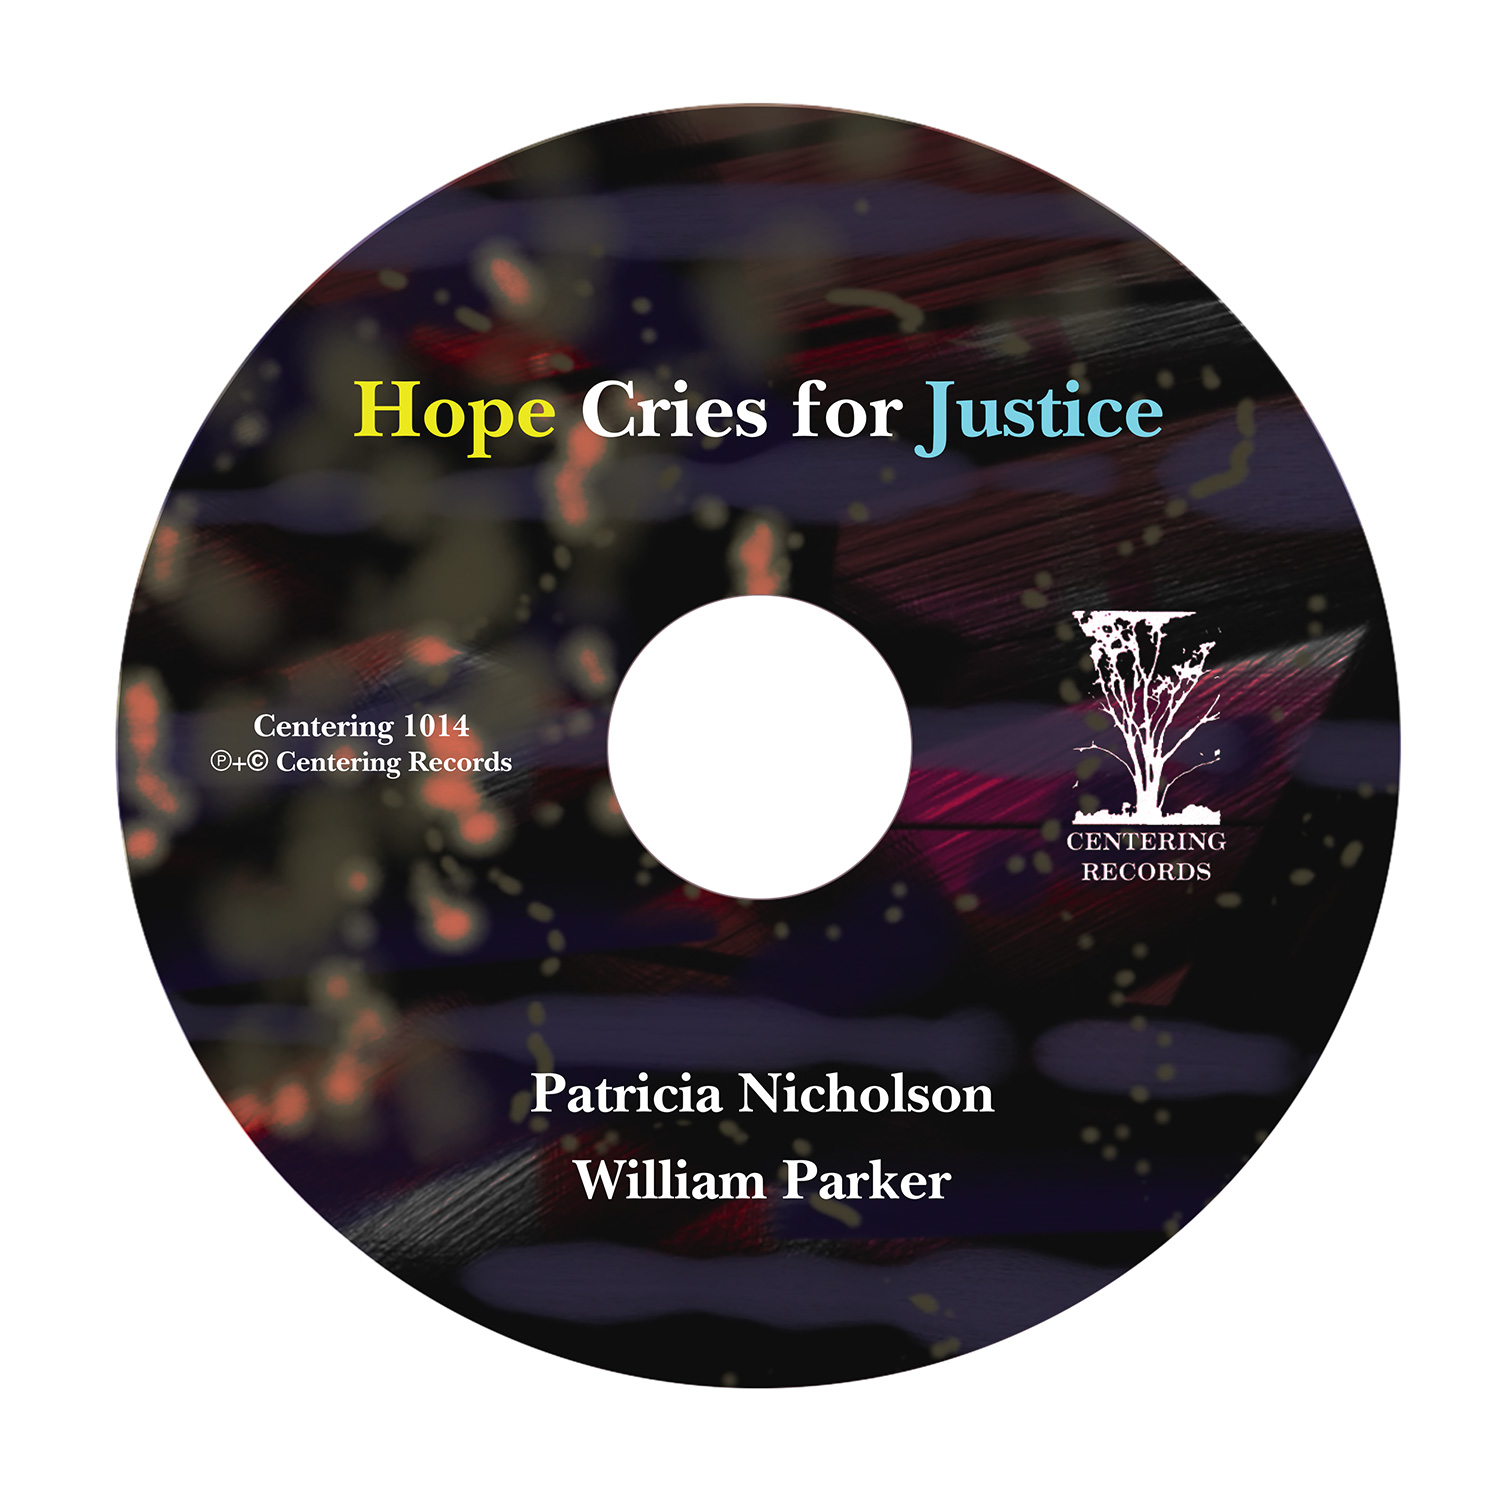 cd art for Hope Cries For Justice by Patricia Nicholson and William Parker